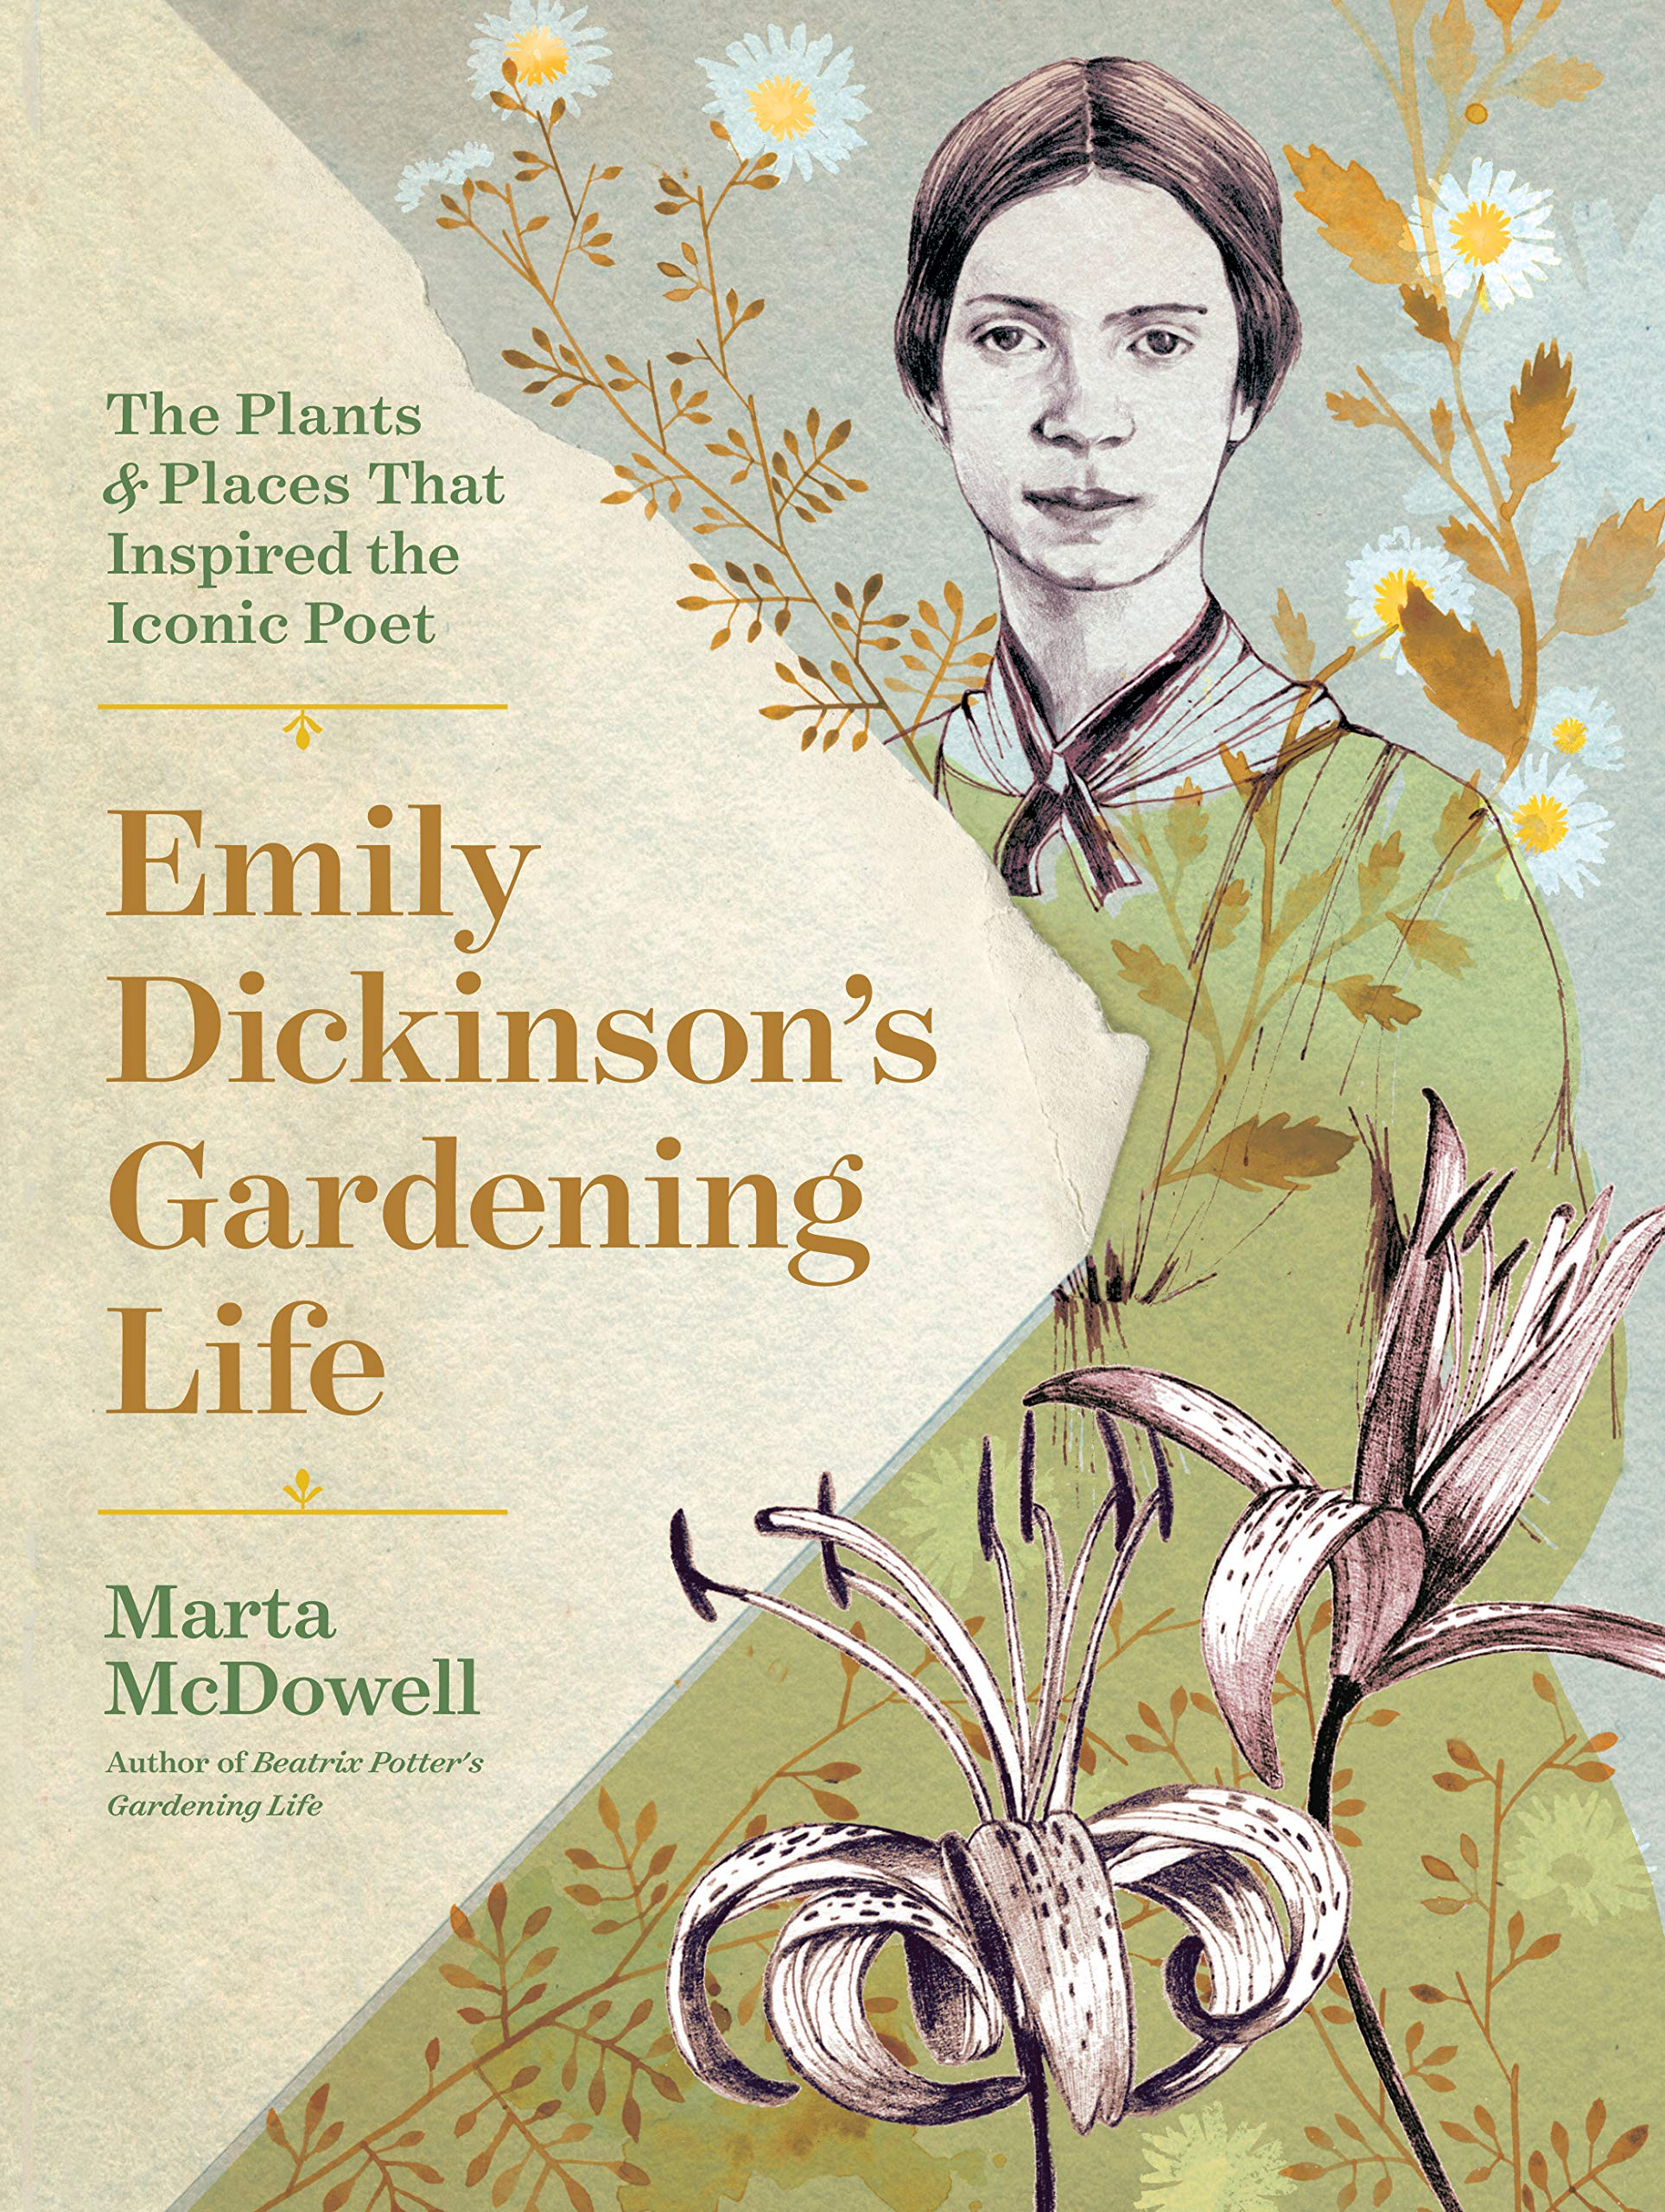 Emily Dickinson's Gardening Life: The Plants and Places That Inspired the Iconic Poet by Timber Press